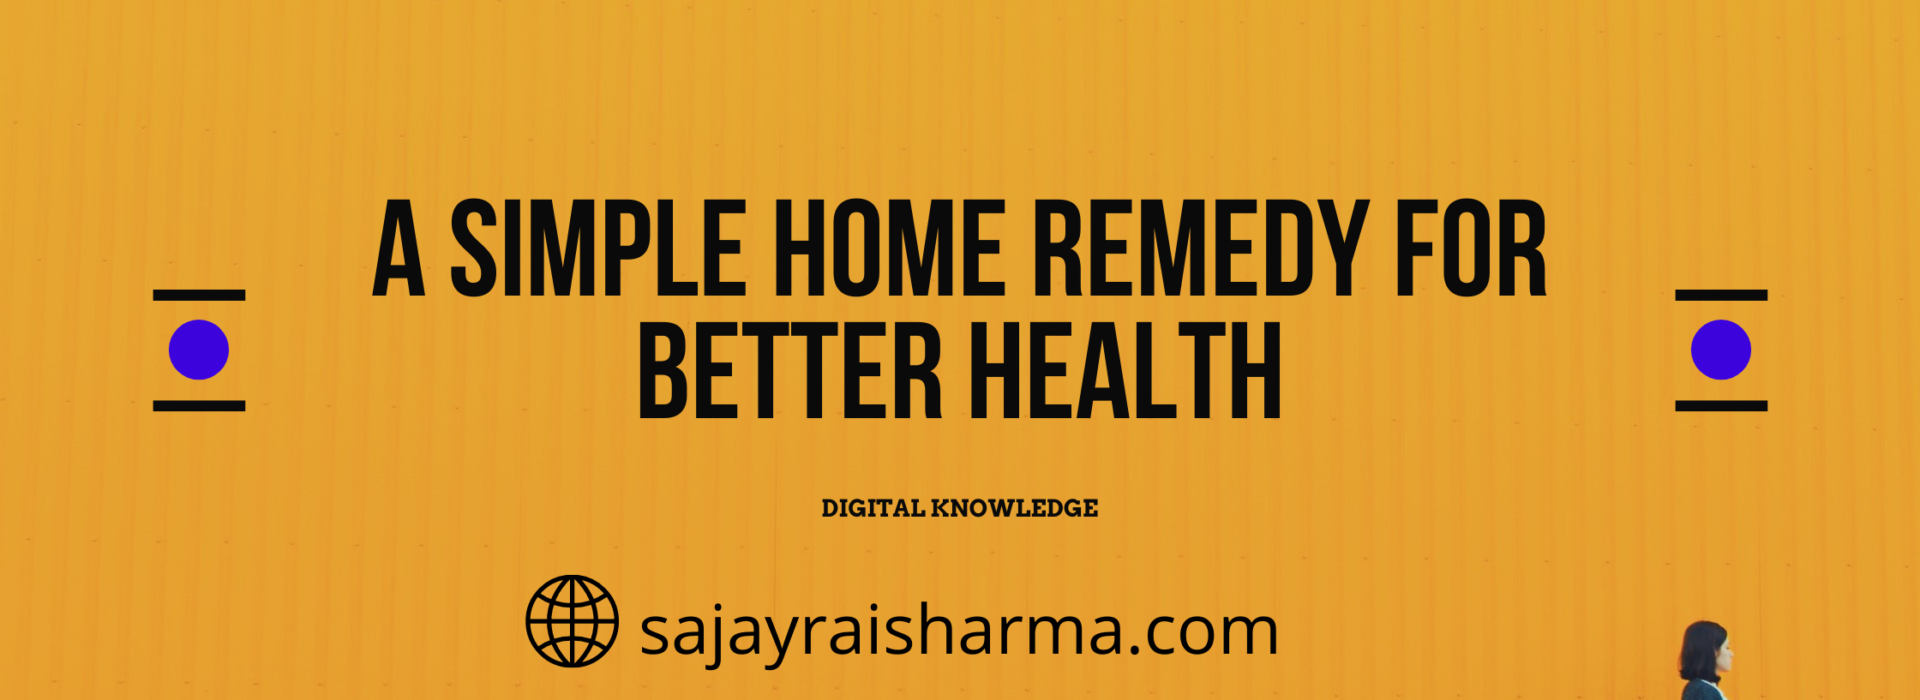 simple home remedy for better health